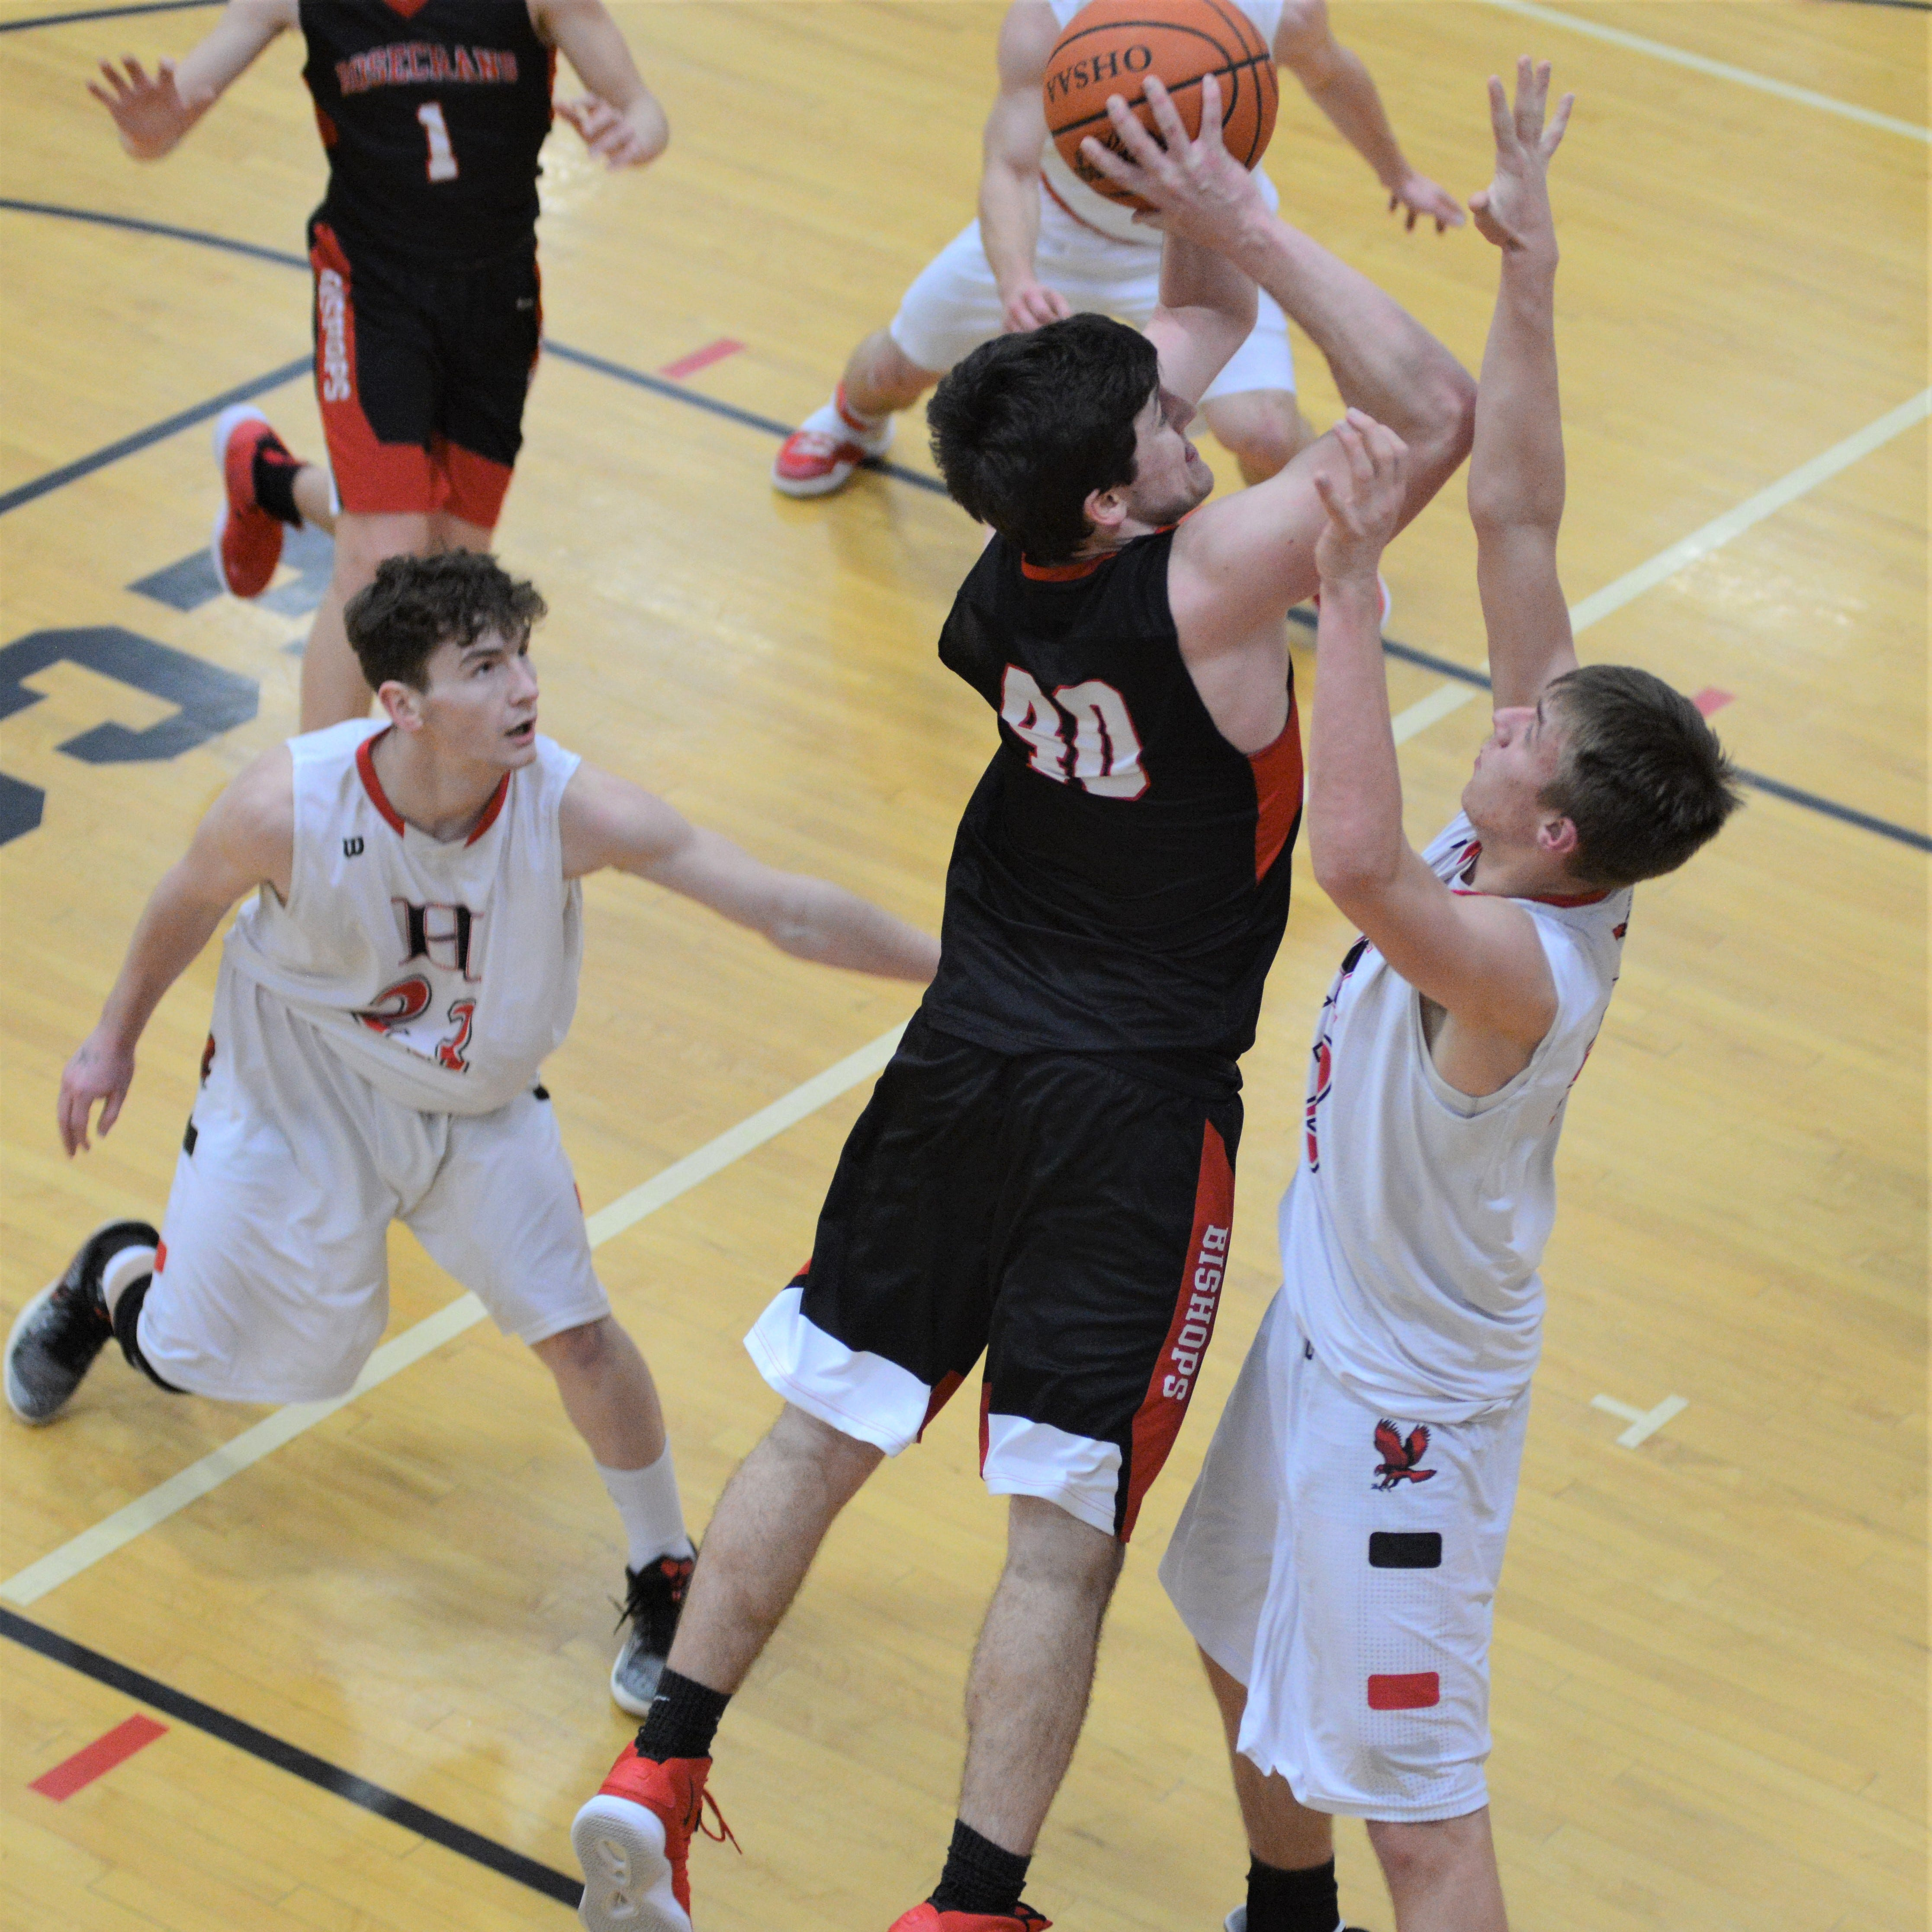 Rough start dooms Rosecrans in loss to Hiland